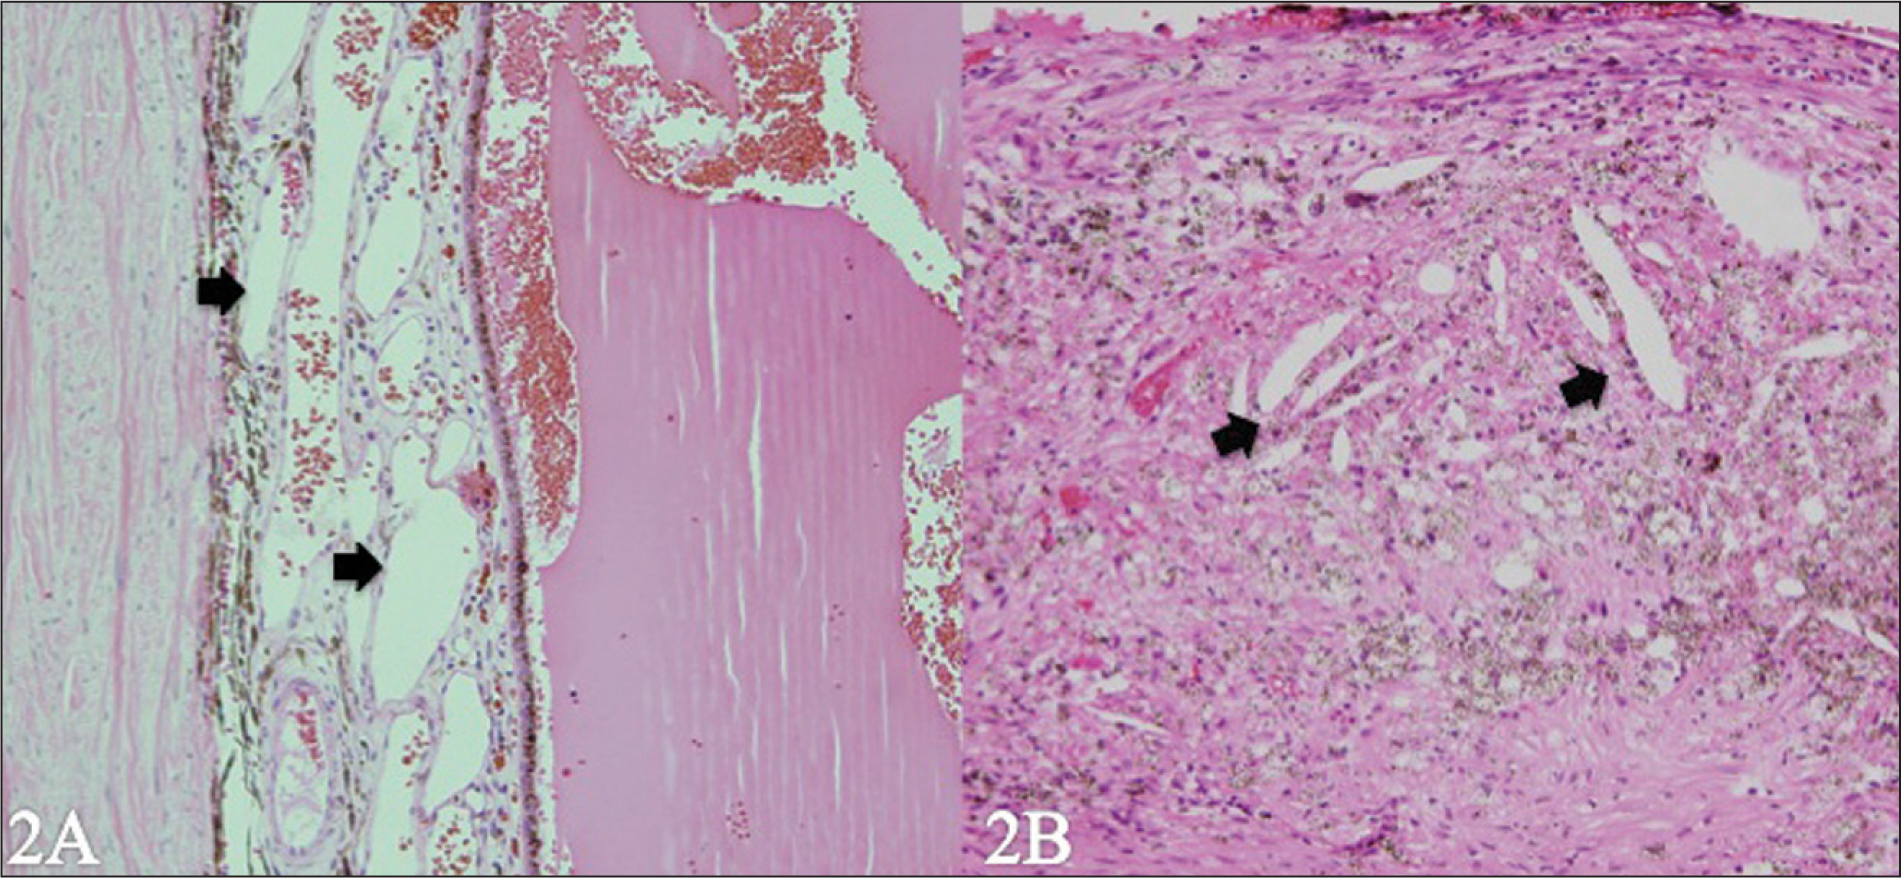 Histologic Examination Revealed Total Exudative Retinal Detachment. (A) Note the Presence of Telangiectasic Retinal Vessels (arrows) (hematoxylin–Eosin, Original Magnification ×10). (B) The Subretinal Fluid is Predominantly Hemorrhagic; Lipid-Laden Macrophages and Cholesterol Crystals are Present (arrows) (Hematoxylin–Eosin, Original Magnification ×40).